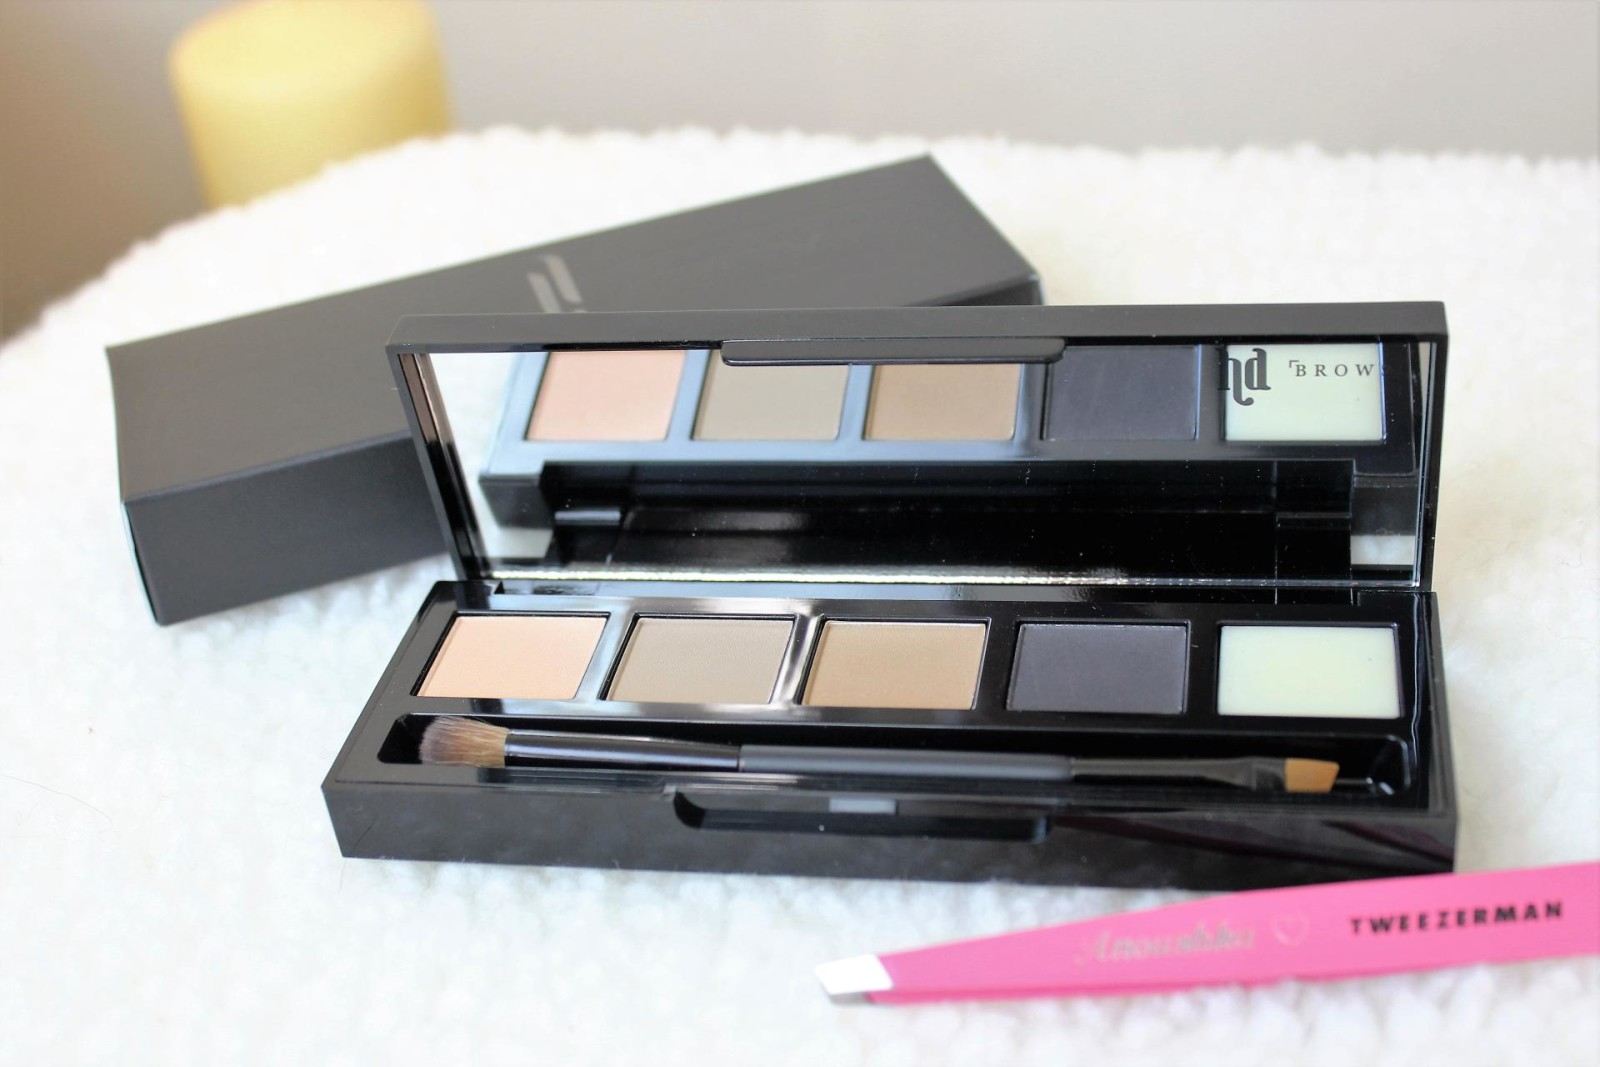 HD Brows Palette in Bombshell